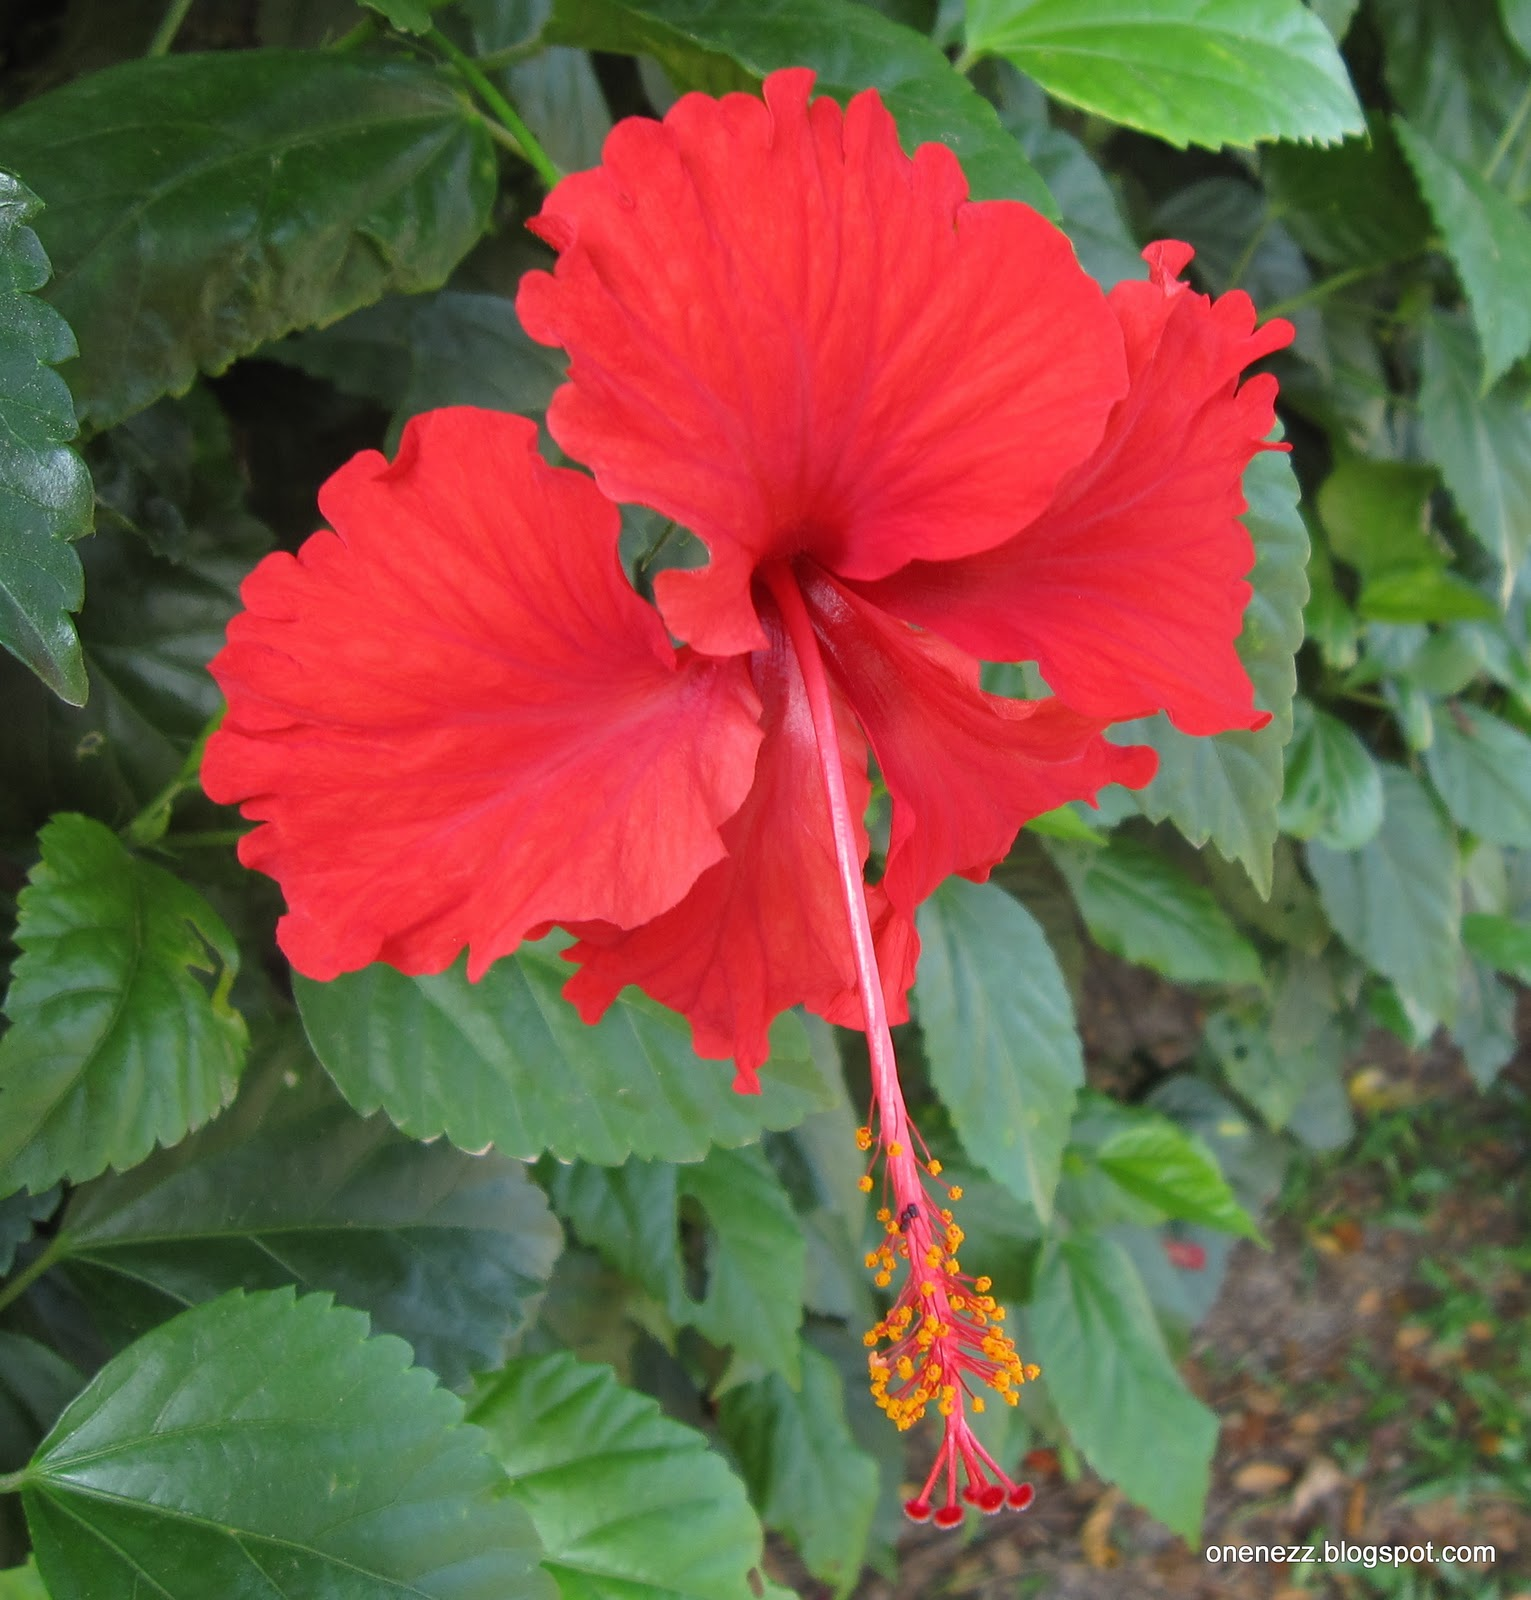 Onenezz hibiscus rosa sinensis this five petaled red hibiscus was selected amongst the many varieties of hibiscus as the national flower the five petals represent the five principles of izmirmasajfo